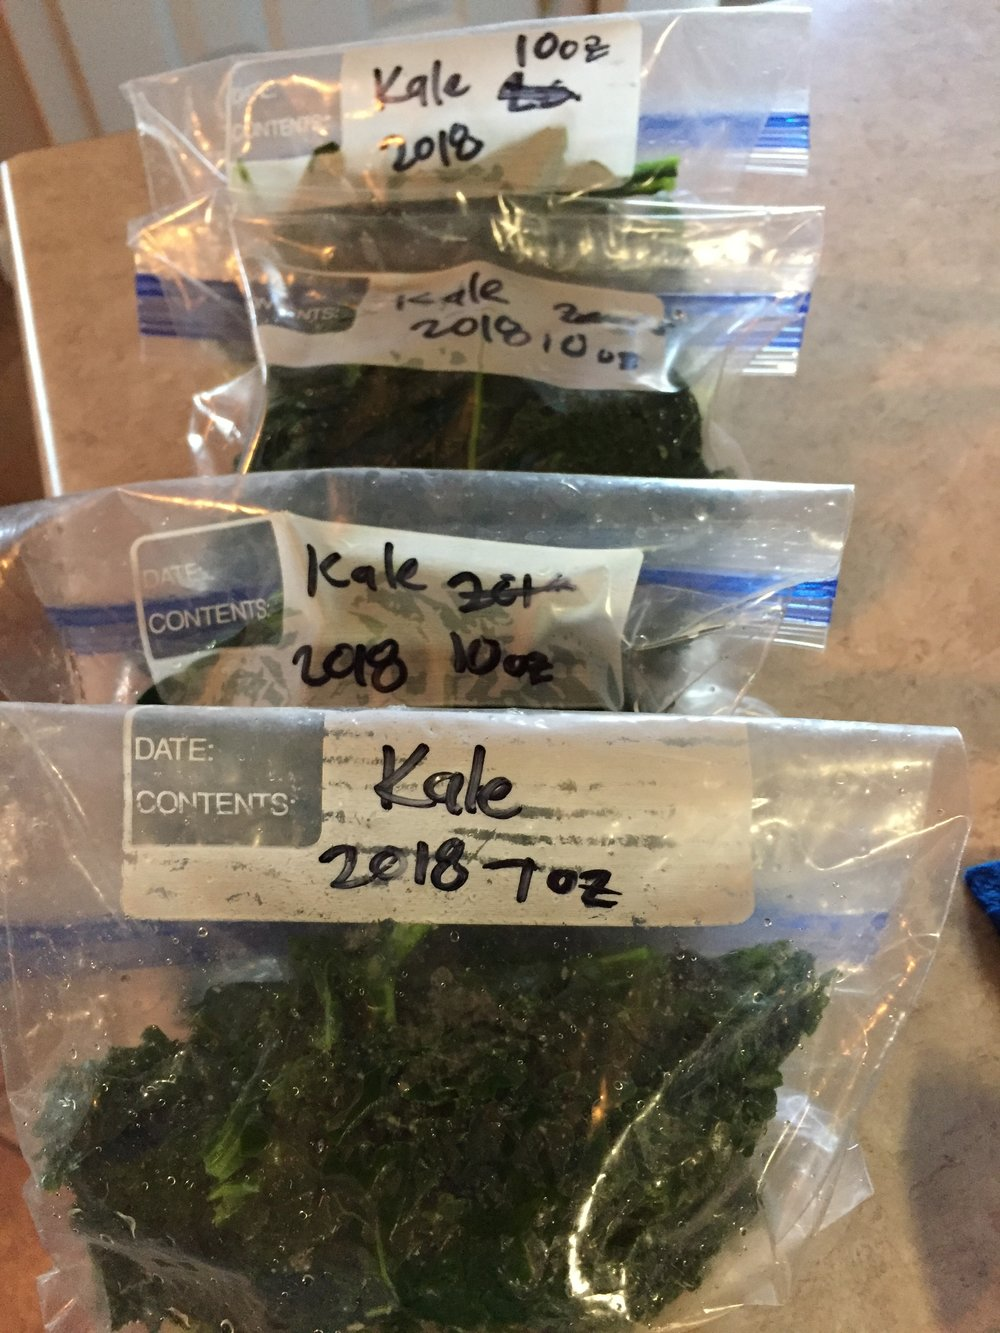 6. Place in a plastic freezer bag, label and freeze. - I find it best to separate and freeze the kale into meal-sized portions.